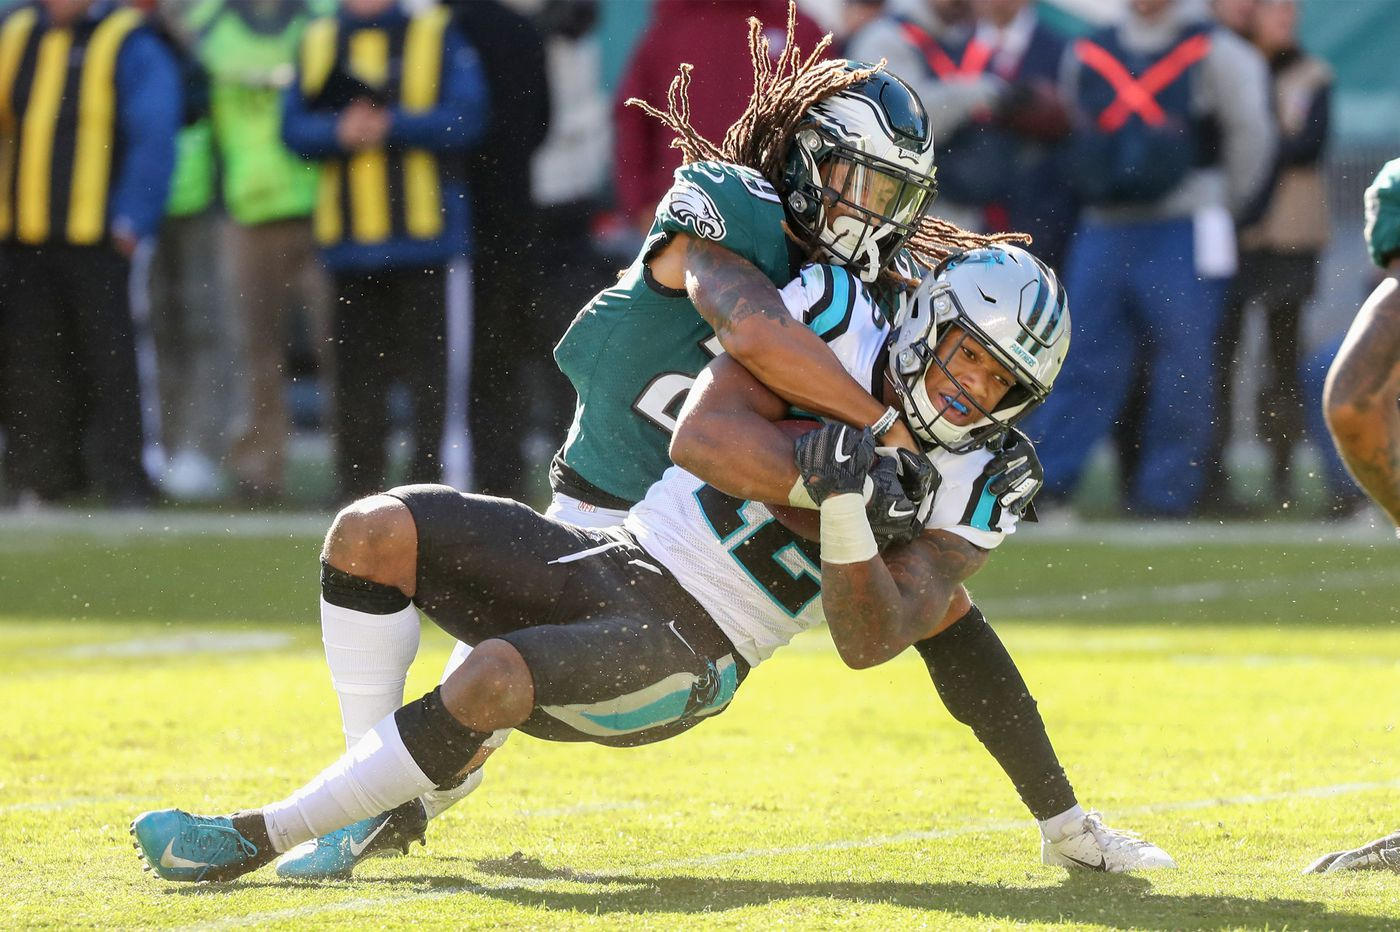 How thin is the Eagles' secondary? Dexter McDougle joined the team on Tuesday and started in Sunday's loss to the Panthers.